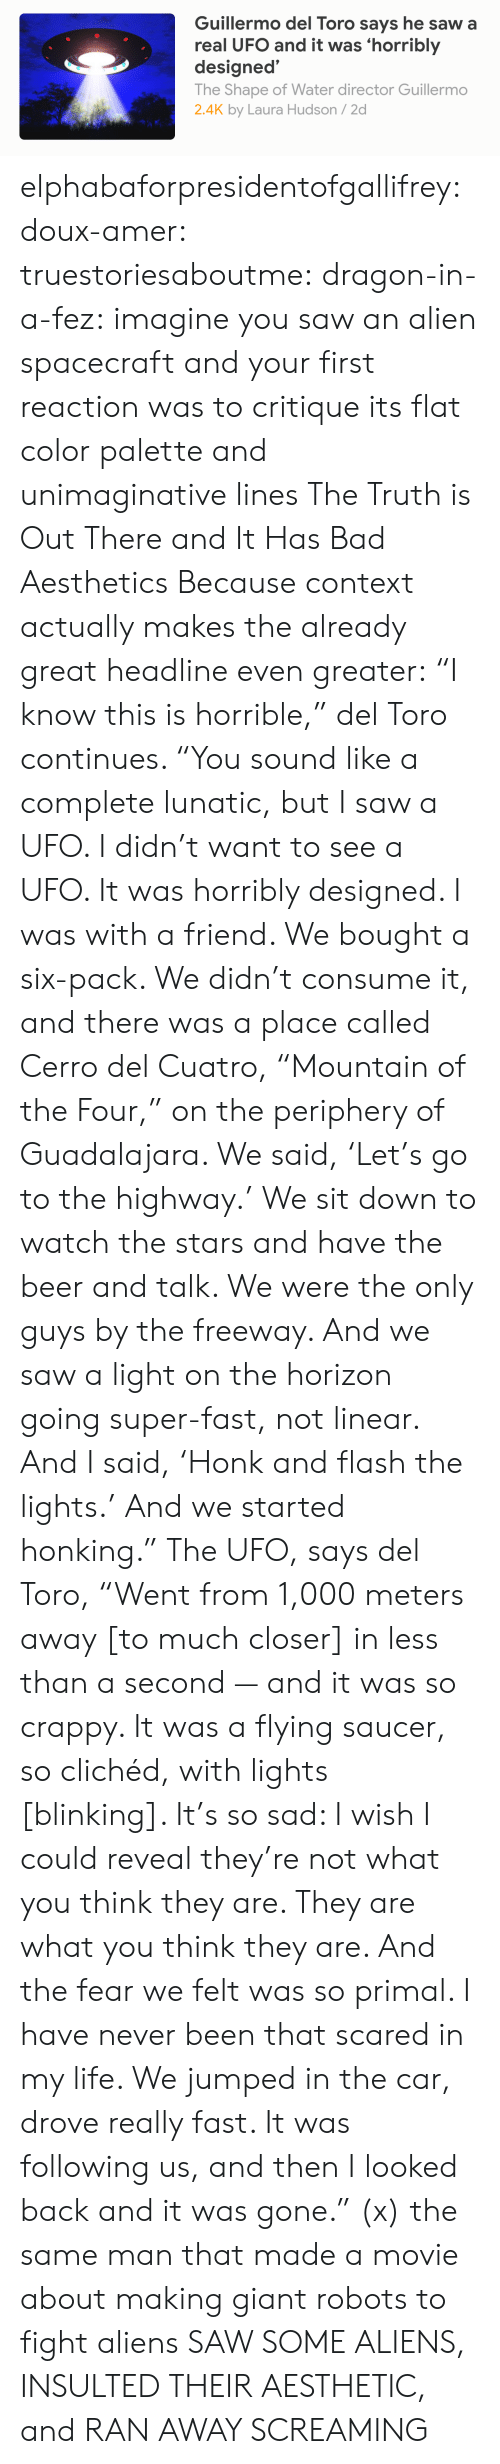 """Bad, Beer, and Life: Guillermo del Toro says he saw a  real UFO and it was 'horribly  designed'  The Shape of Water director Guillermo  2.4K by Laura Hudson/2d elphabaforpresidentofgallifrey:  doux-amer:  truestoriesaboutme:  dragon-in-a-fez: imagine you saw an alien spacecraft and your first reaction was to critique its flat color palette and unimaginative lines The Truth is Out There and It Has Bad Aesthetics  Because context actually makes the already great headline even greater:  """"I know this is horrible,"""" del Toro continues. """"You sound like a complete lunatic, but I saw a UFO. I didn't want to see a UFO. It was horribly designed. I was with a friend. We bought a six-pack. We didn't consume it, and there was a place called Cerro del Cuatro, """"Mountain of the Four,"""" on the periphery of Guadalajara. We said, 'Let's go to the highway.' We sit down to watch the stars and have the beer and talk. We were the only guys by the freeway. And we saw a light on the horizon going super-fast, not linear. And I said, 'Honk and flash the lights.' And we started honking."""" The UFO, says del Toro, """"Went from 1,000 meters away [to much closer] in less than a second — and it was so crappy. It was a flying saucer, so clichéd, with lights [blinking]. It's so sad: I wish I could reveal they're not what you think they are. They are what you think they are. And the fear we felt was so primal. I have never been that scared in my life. We jumped in the car, drove really fast. It was following us, and then I looked back and it was gone."""" (x)    the same man that made a movie about making giant robots to fight aliens SAW SOME ALIENS, INSULTED THEIR AESTHETIC, and RAN AWAY SCREAMING"""